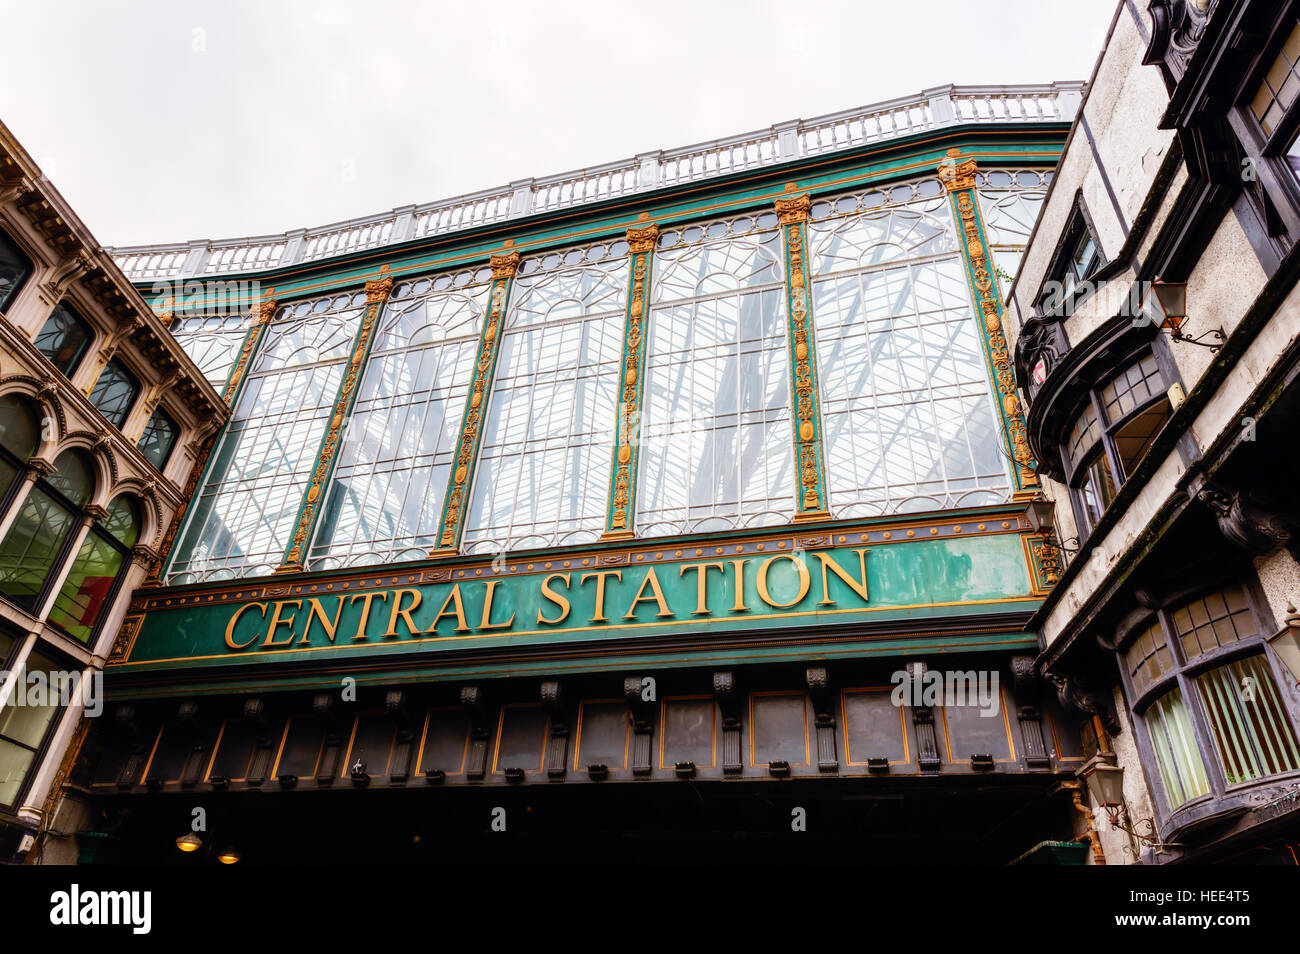 picture of the central station of Glasgow, Scotland, UK - Stock Image